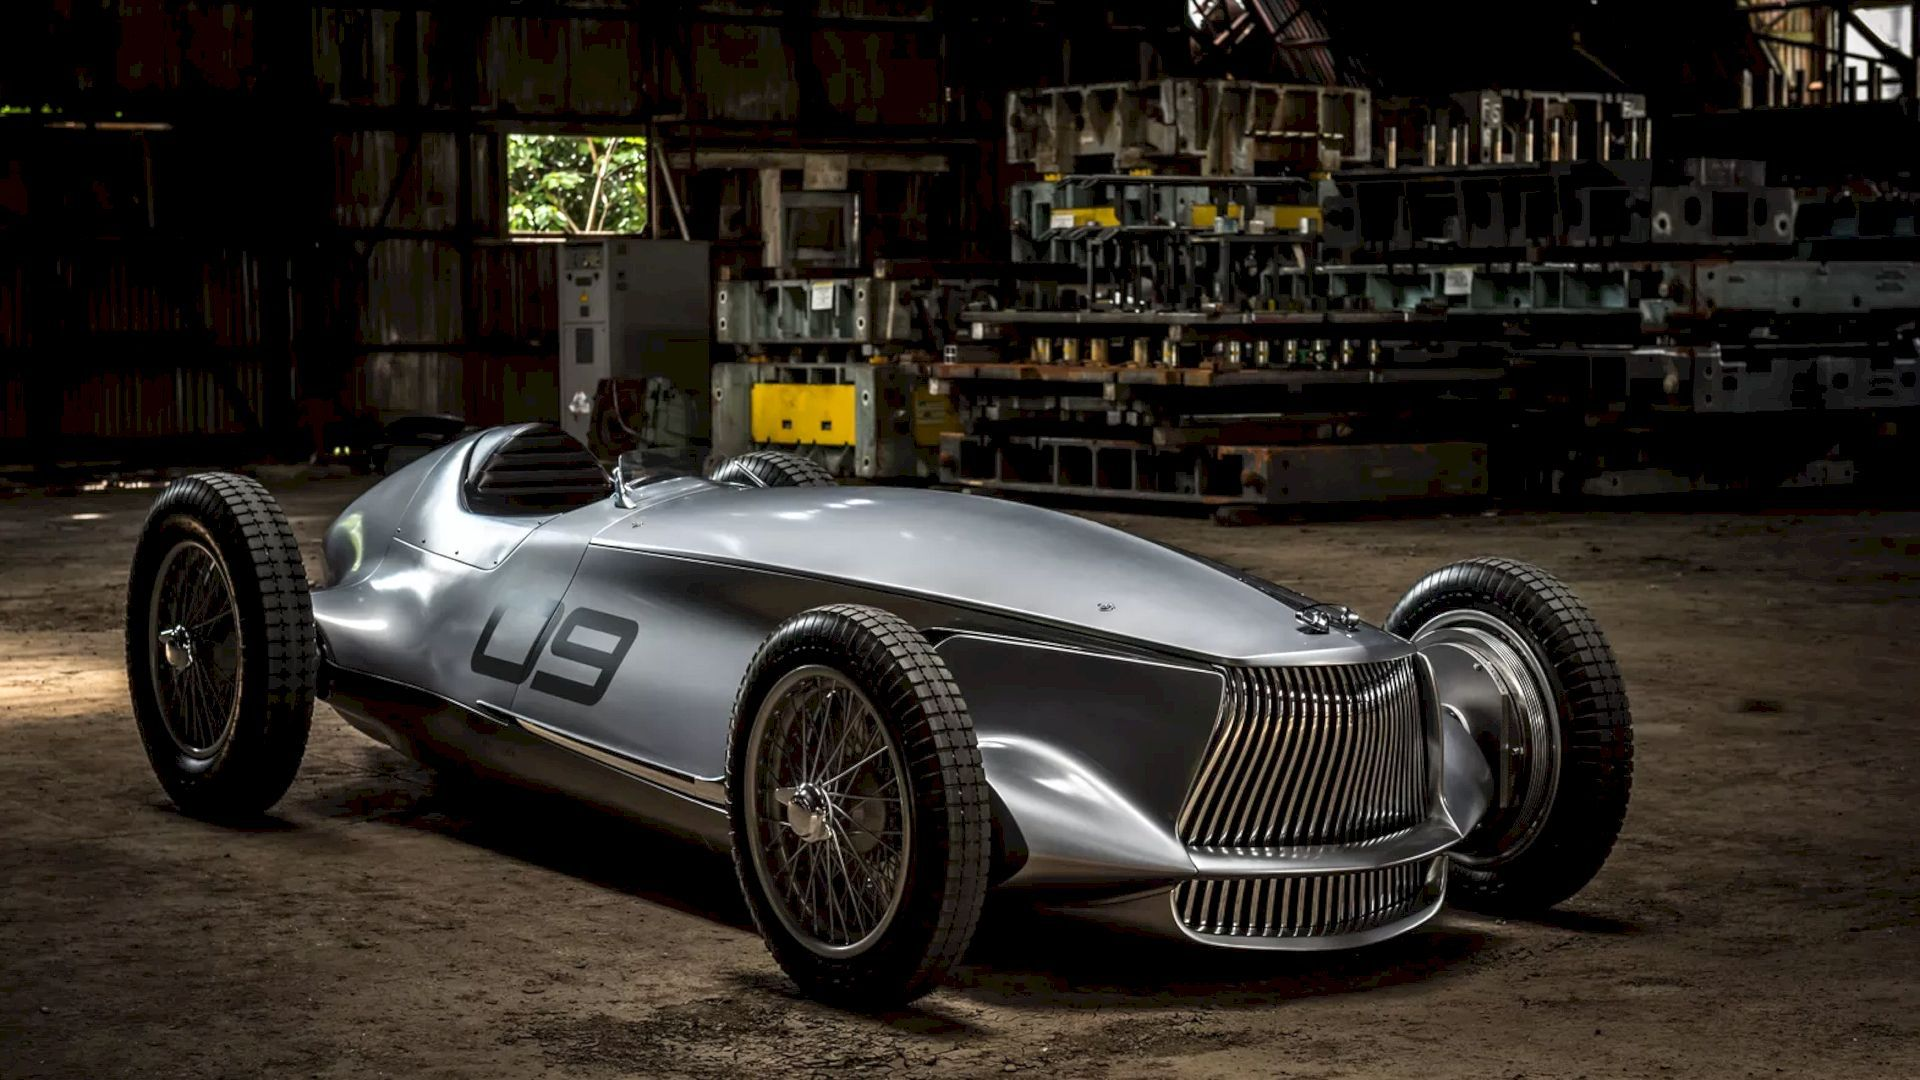 INFINITI Prototype 9 Concept: The Old New Perspective in Retro-Faced ...